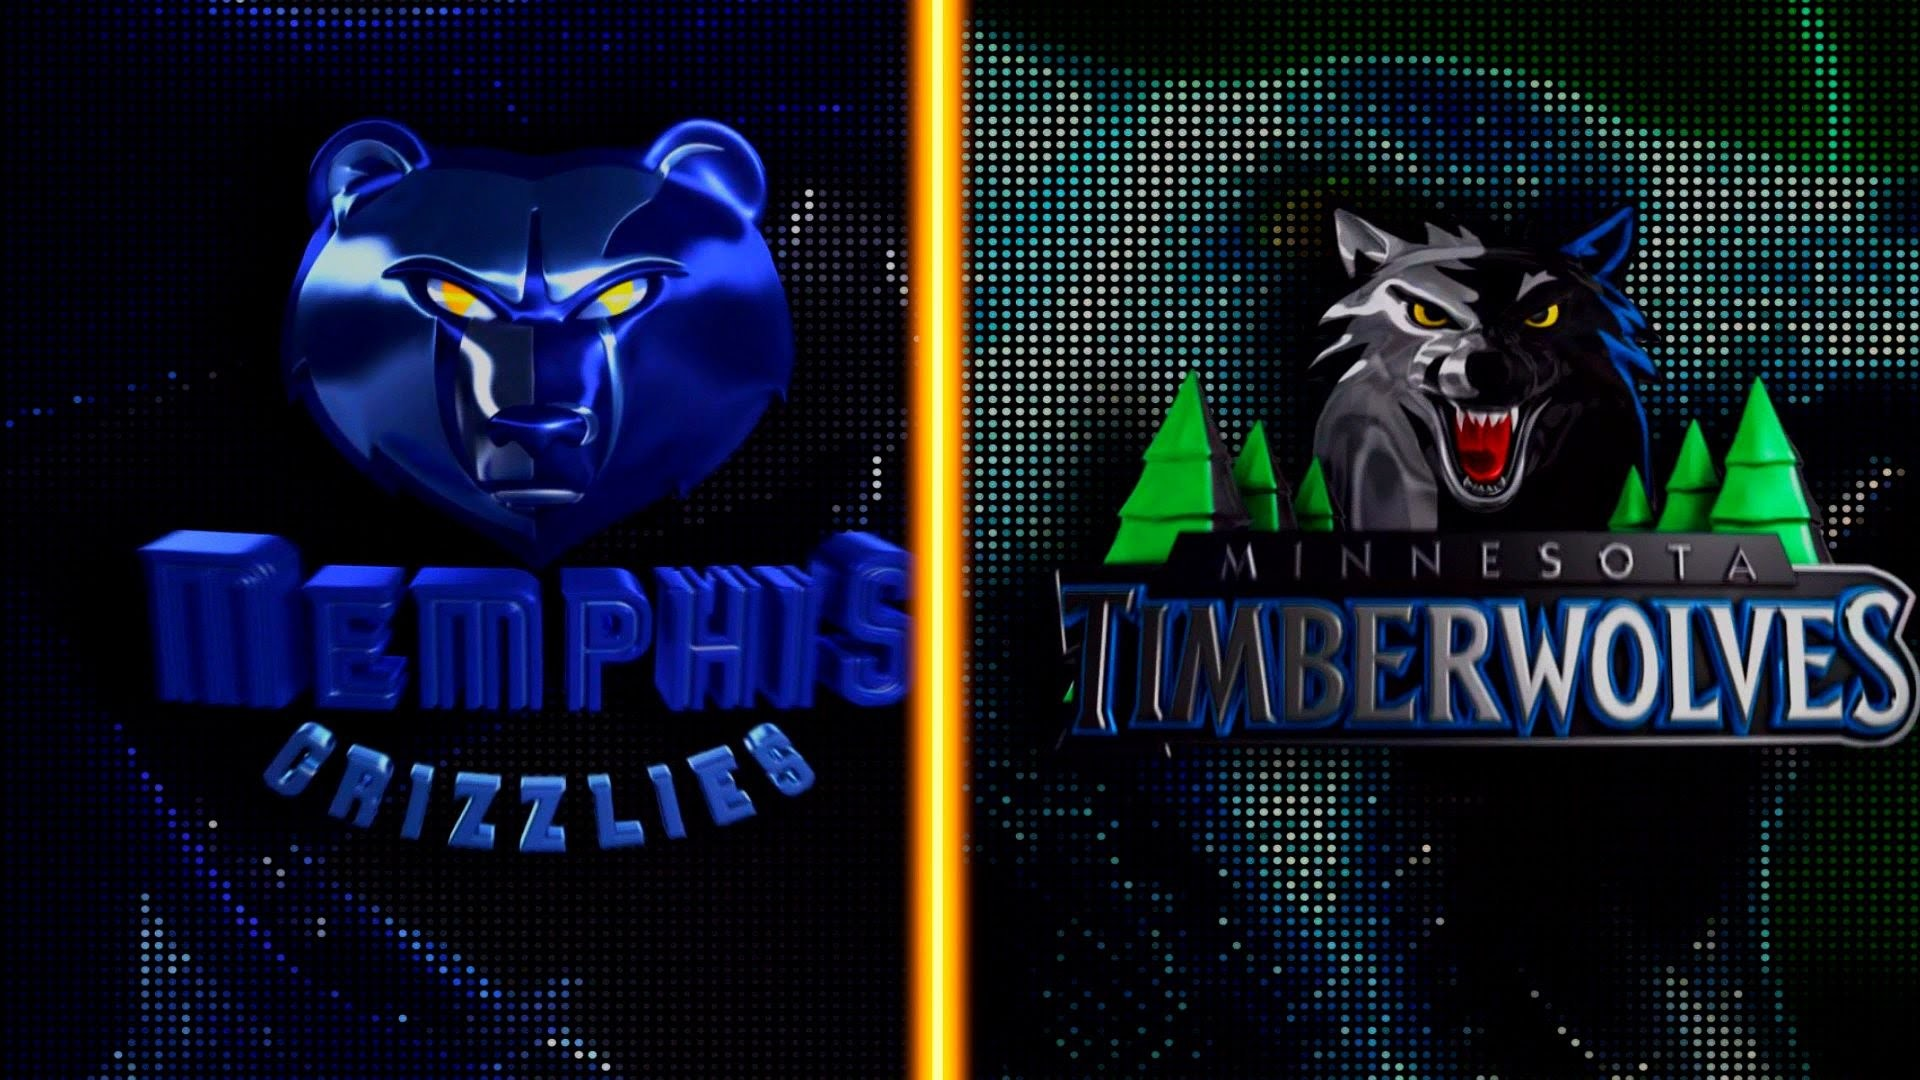 1920x1080 PS4: NBA 2K16 - Memphis Grizzlies vs. Minnesota Timberwolves [1080p 60 FPS]  - YouTube